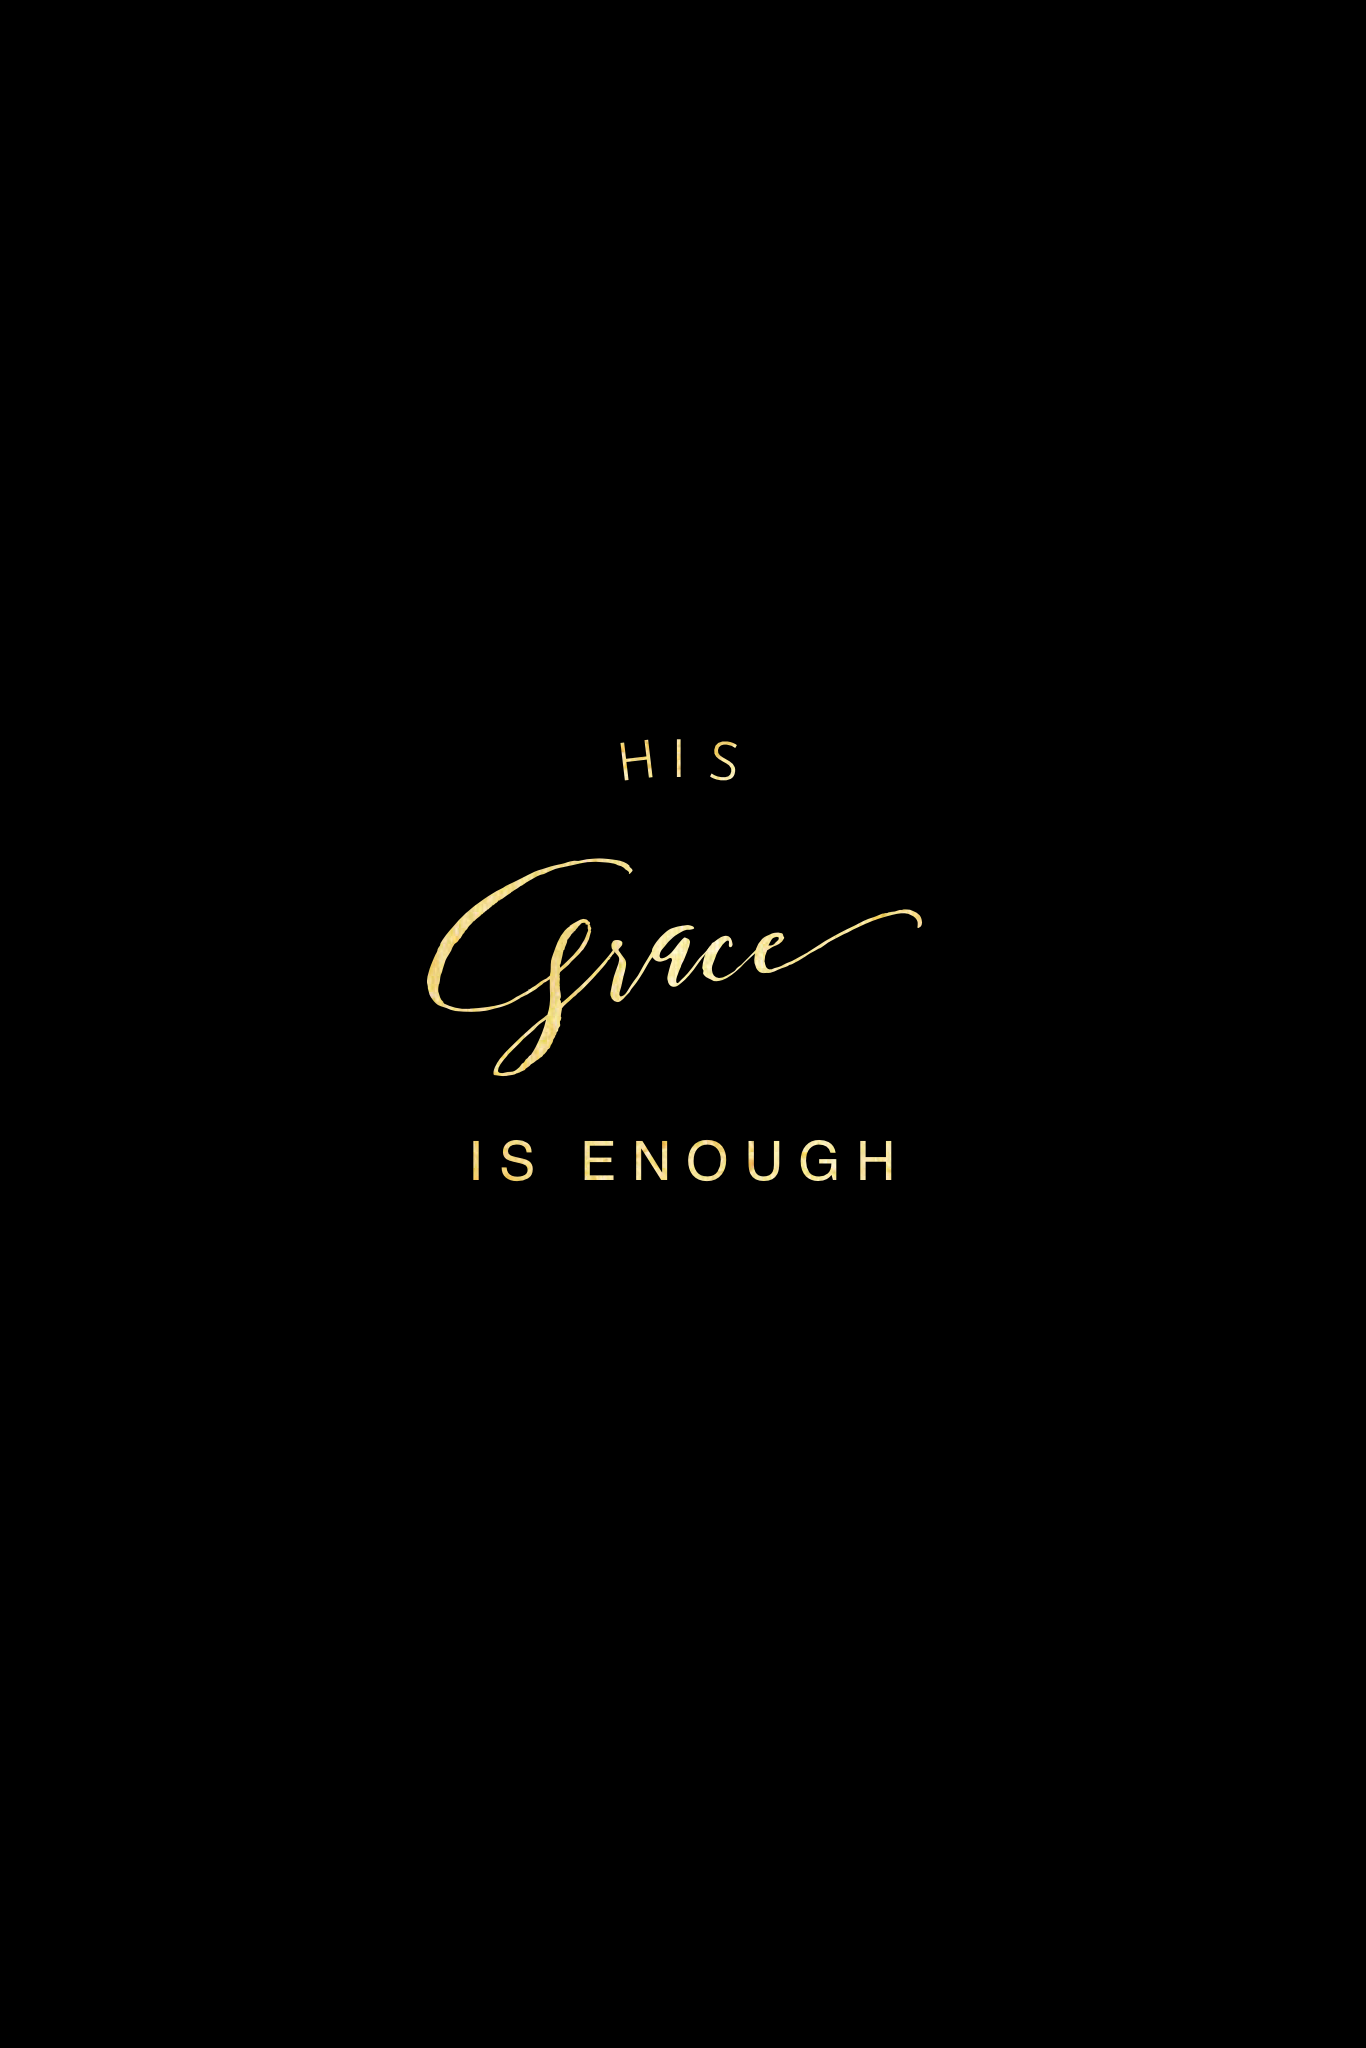 His Grace Is Enough Christian Quotes Grace Christianencouragement Faith Gospel Palavras Citacoes Biblia Frases